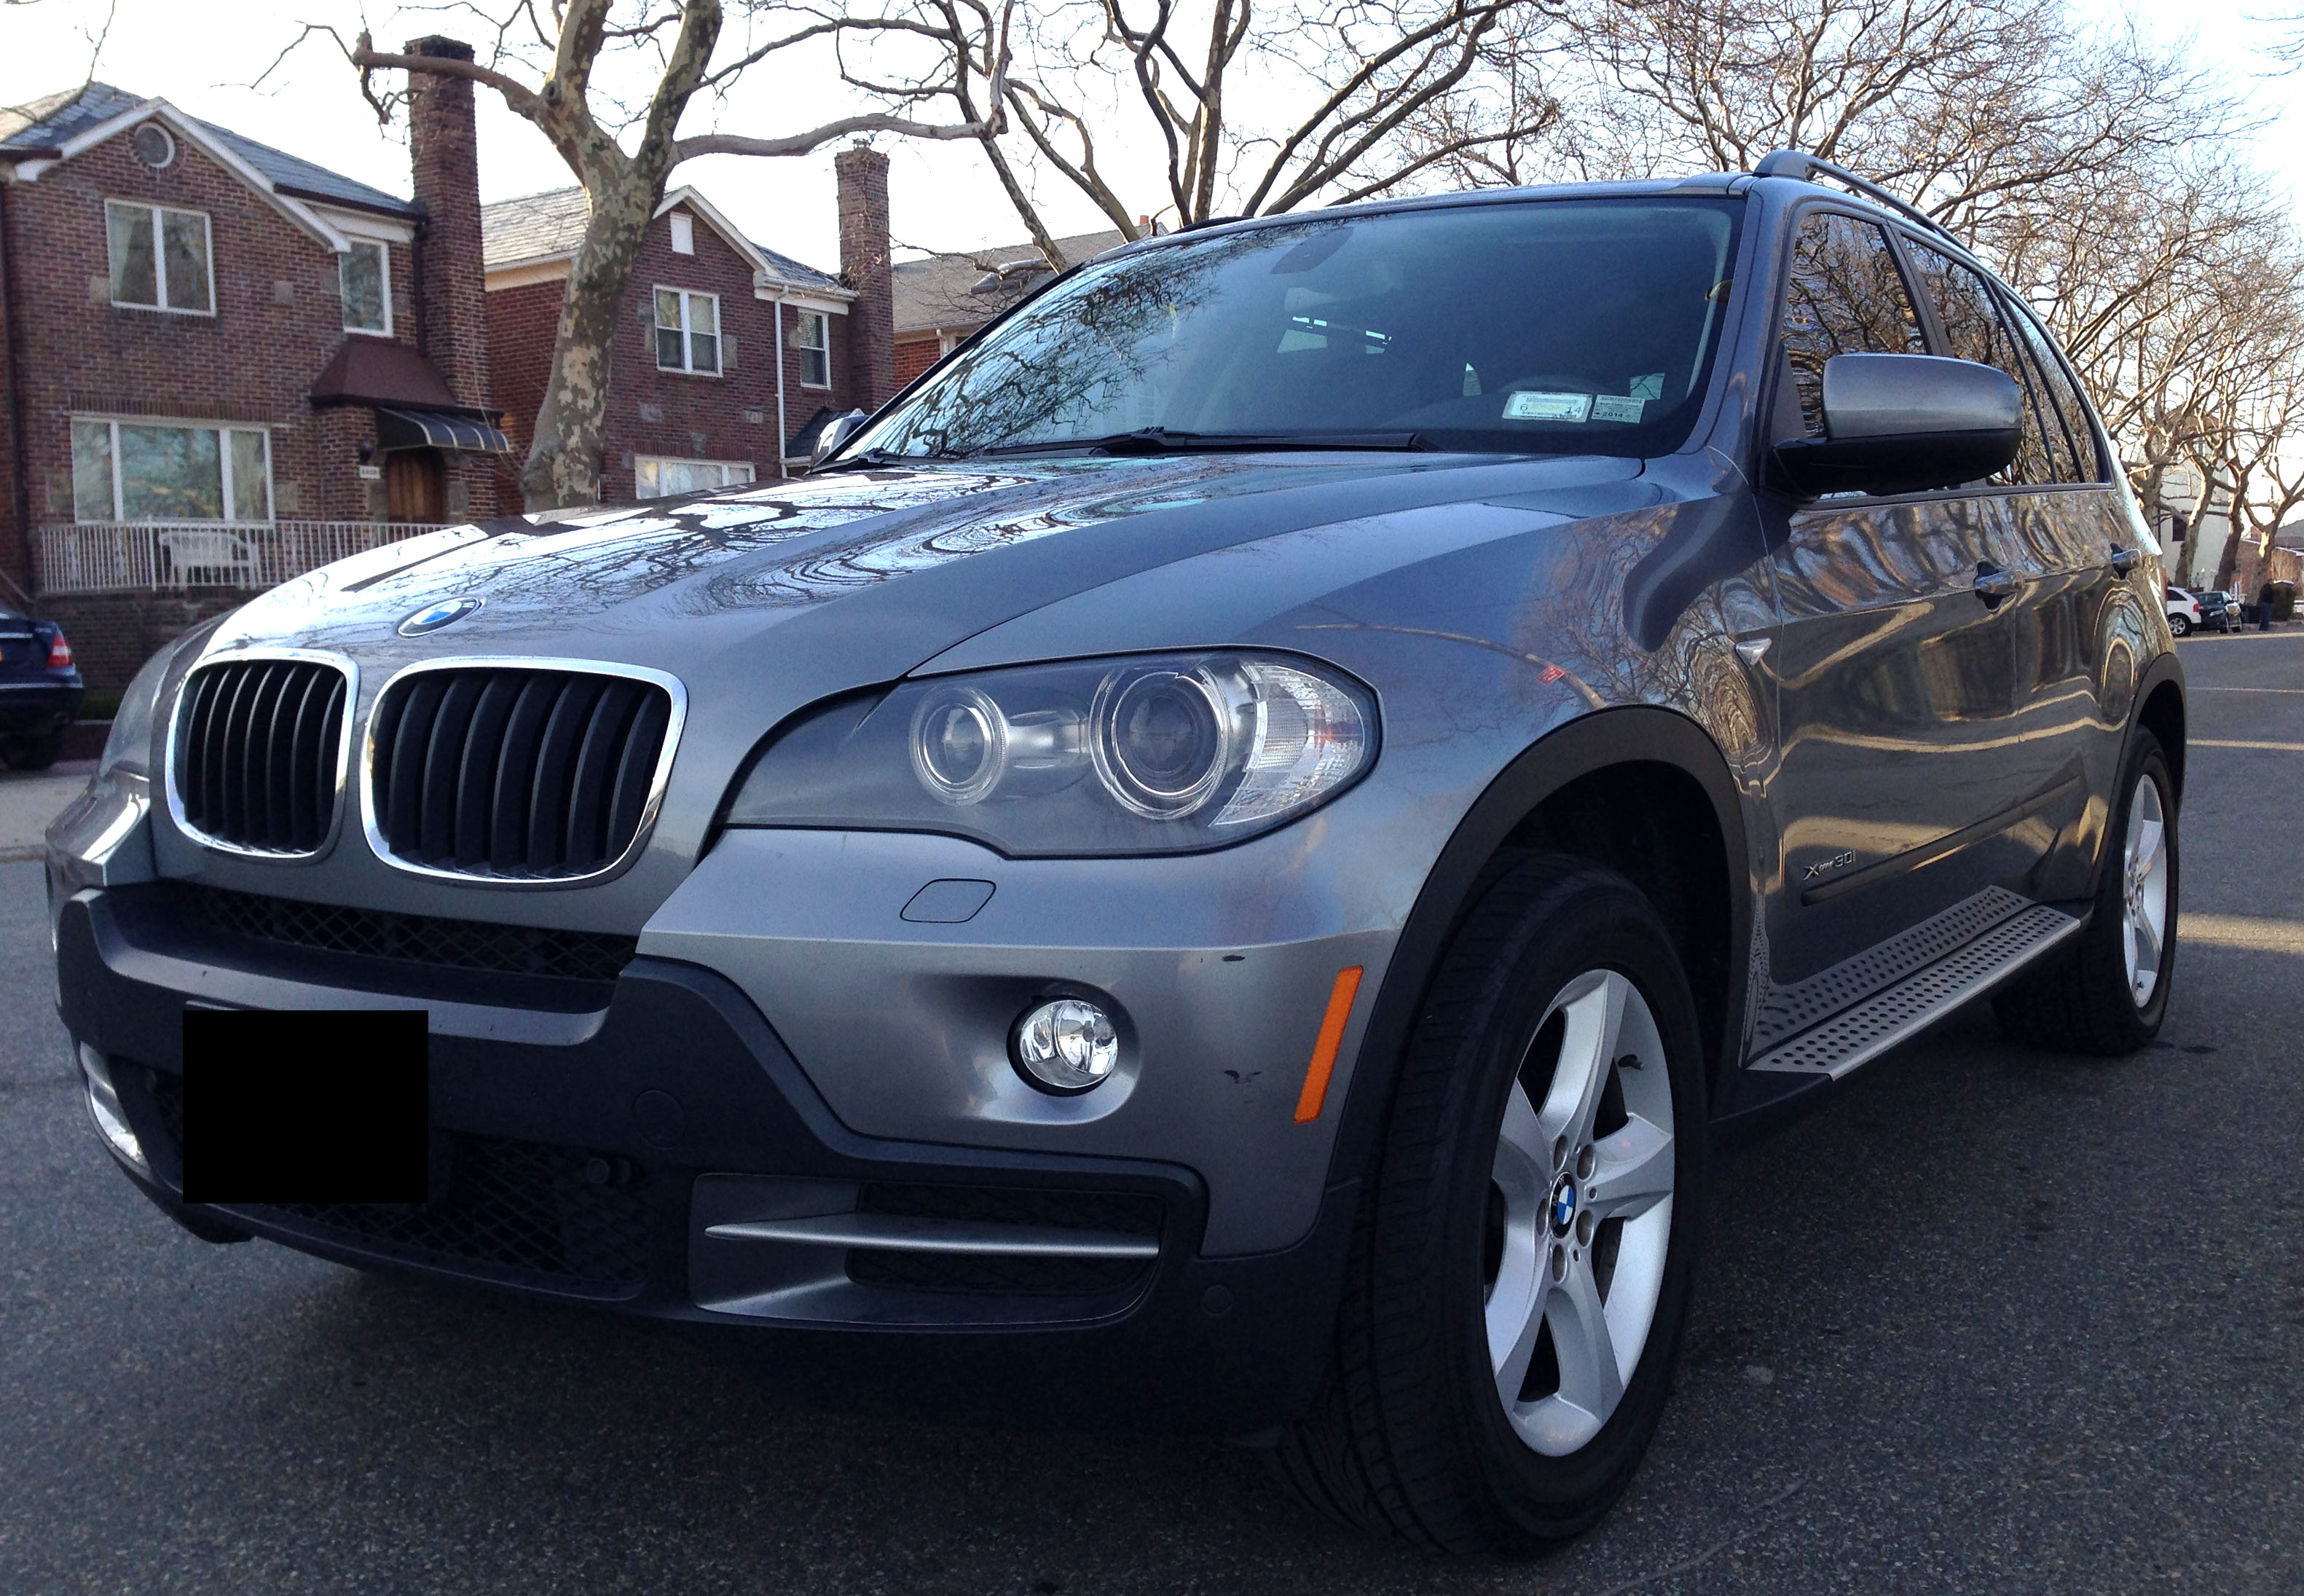 Used Car - 2009 BMW X5 for Sale in Brooklyn, NY